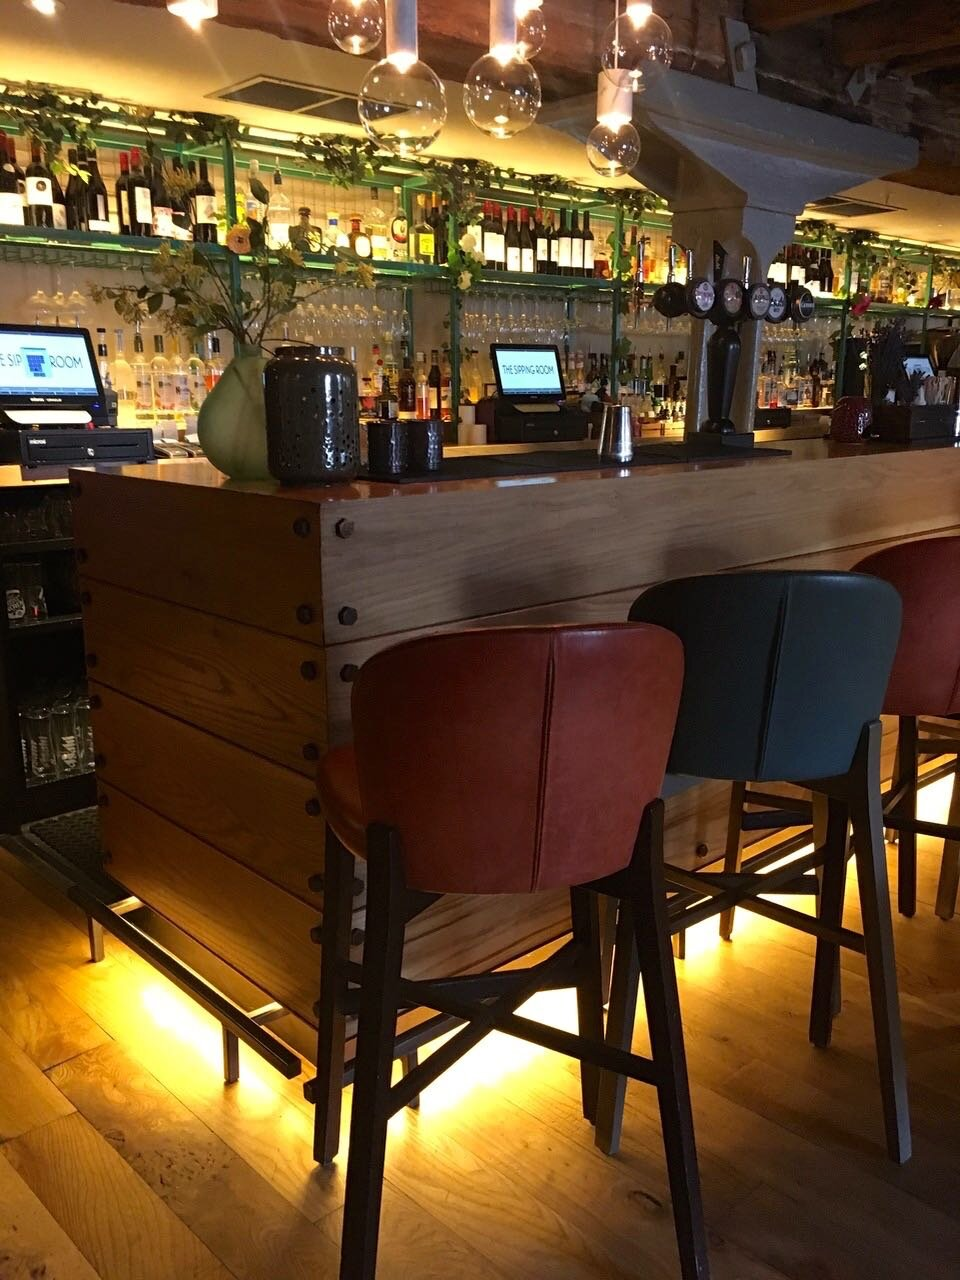 a wooden bar, open shelves and bar stools with clever lighting